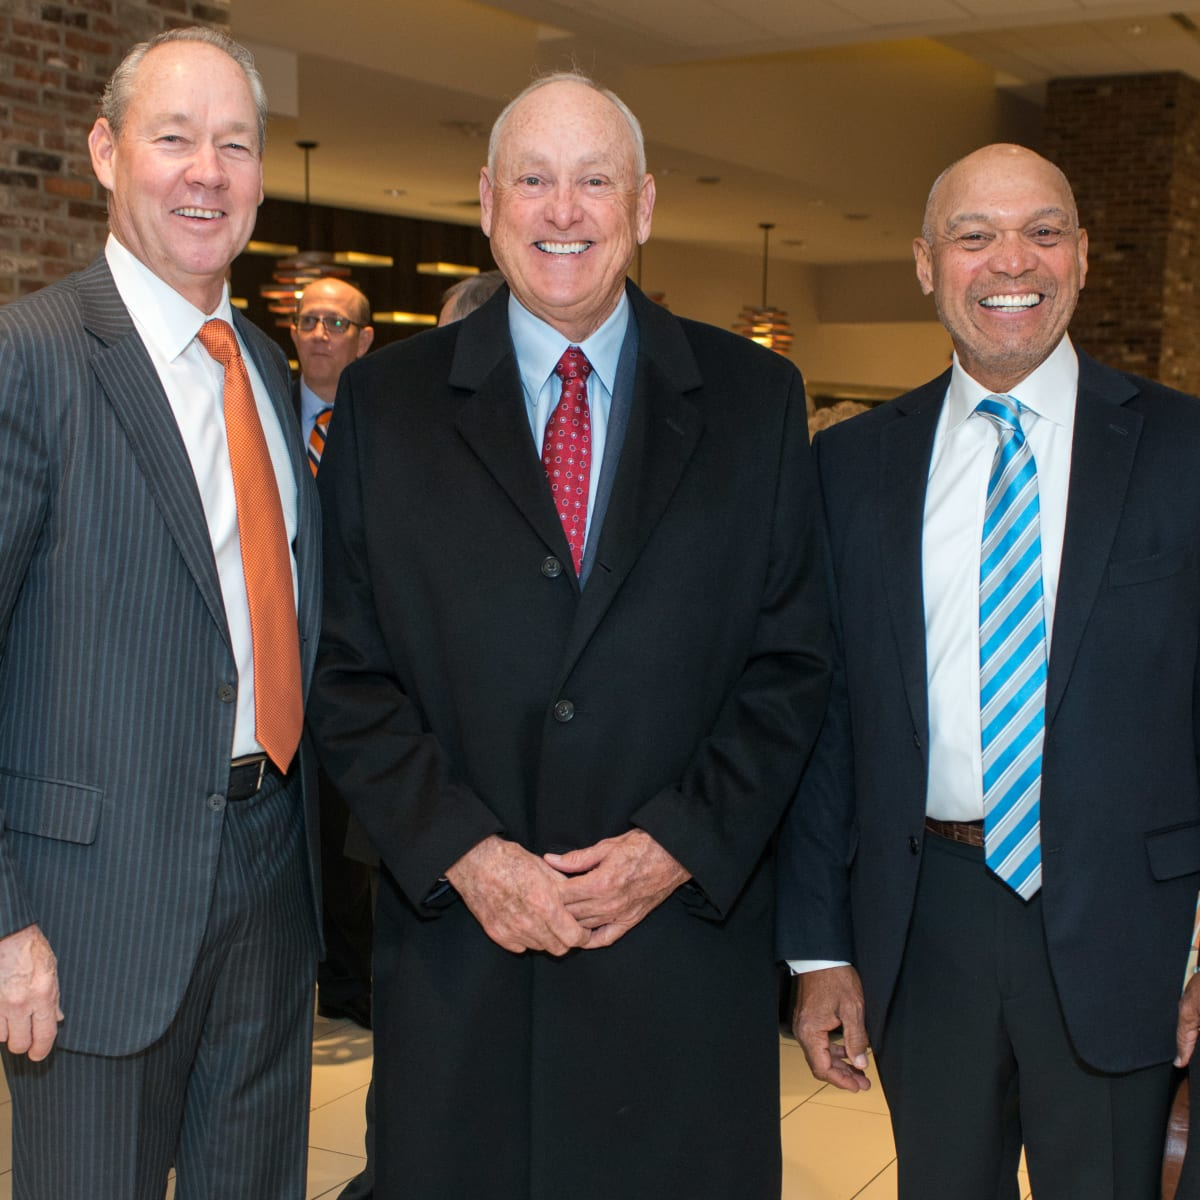 Astros Diamond Gala, Jan. 2016, Jim Crane, Nolan Ryan, Reggie Jackson